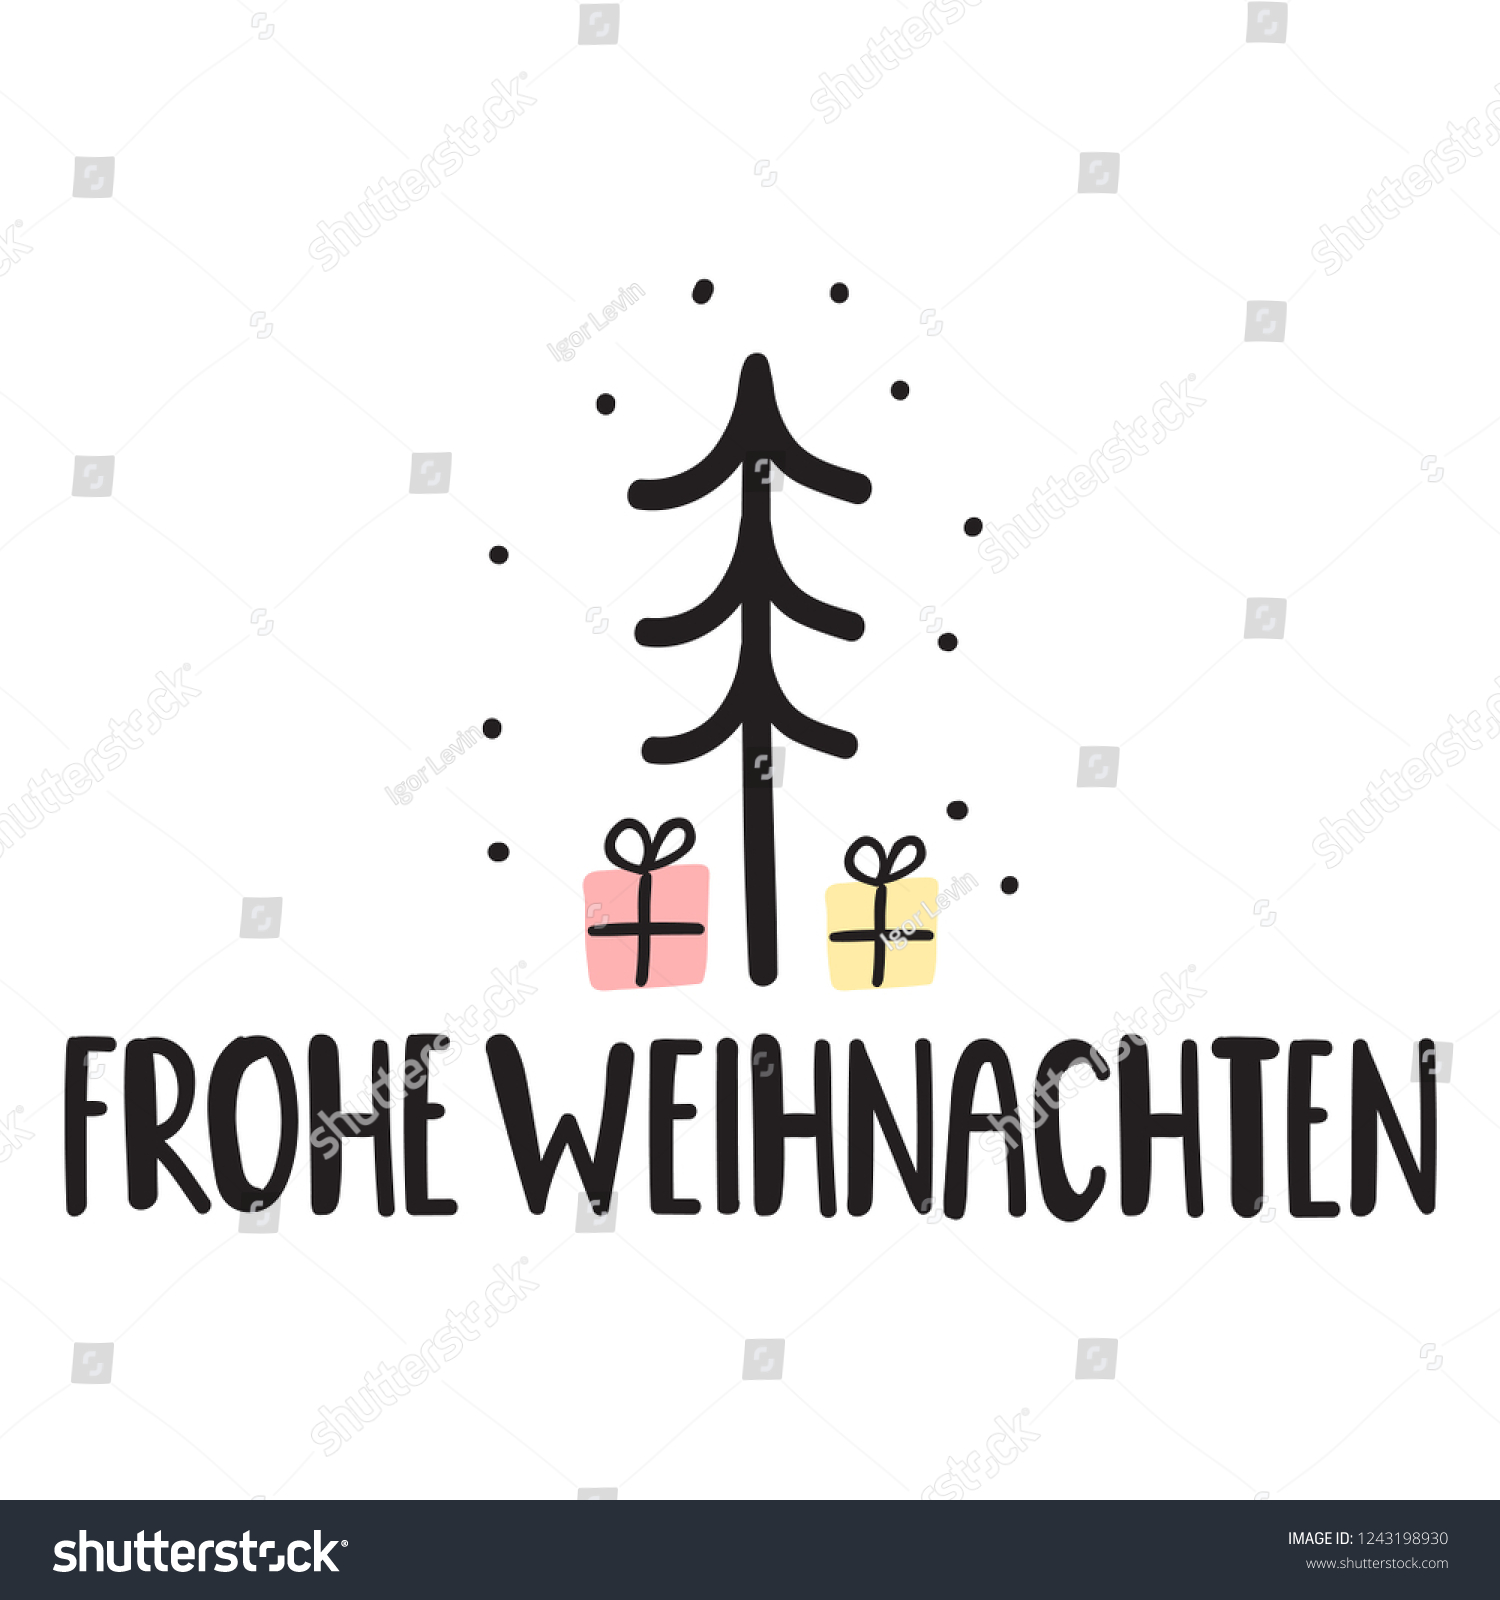 Design Weihnachten Merry Christmas German Frohe Weihnachten Vector Stock Vector